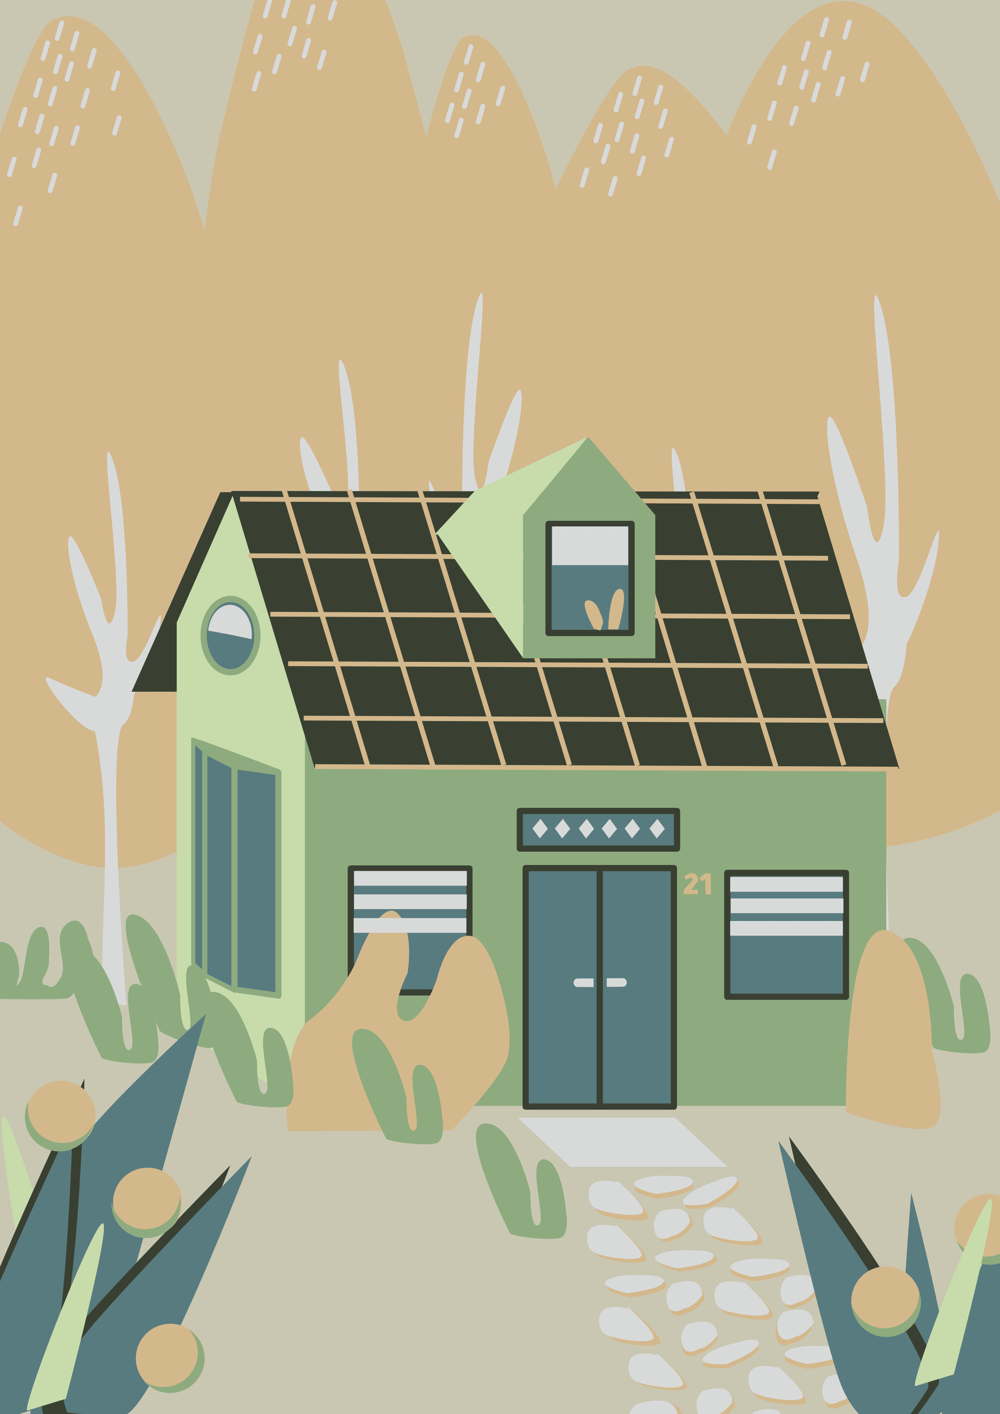 Tiny house in the woods - image 3 - student project